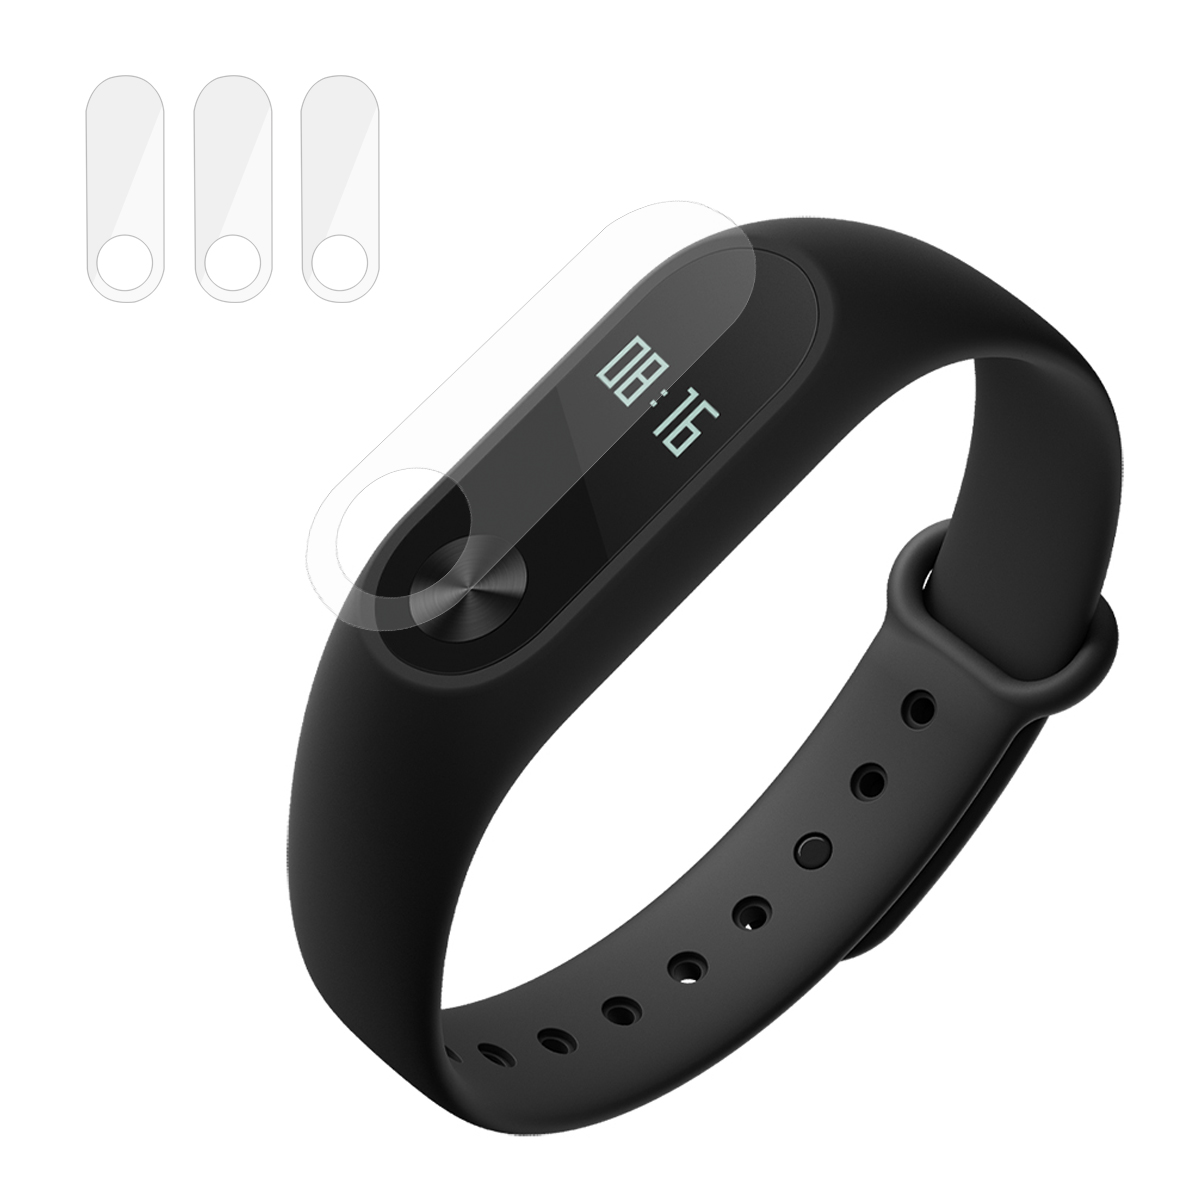 Hat Prince Tempered Glass for Xiaomi Mi Band 2 Transparent Smart Watch Accessories Sale, Price & Reviews | Gearbest